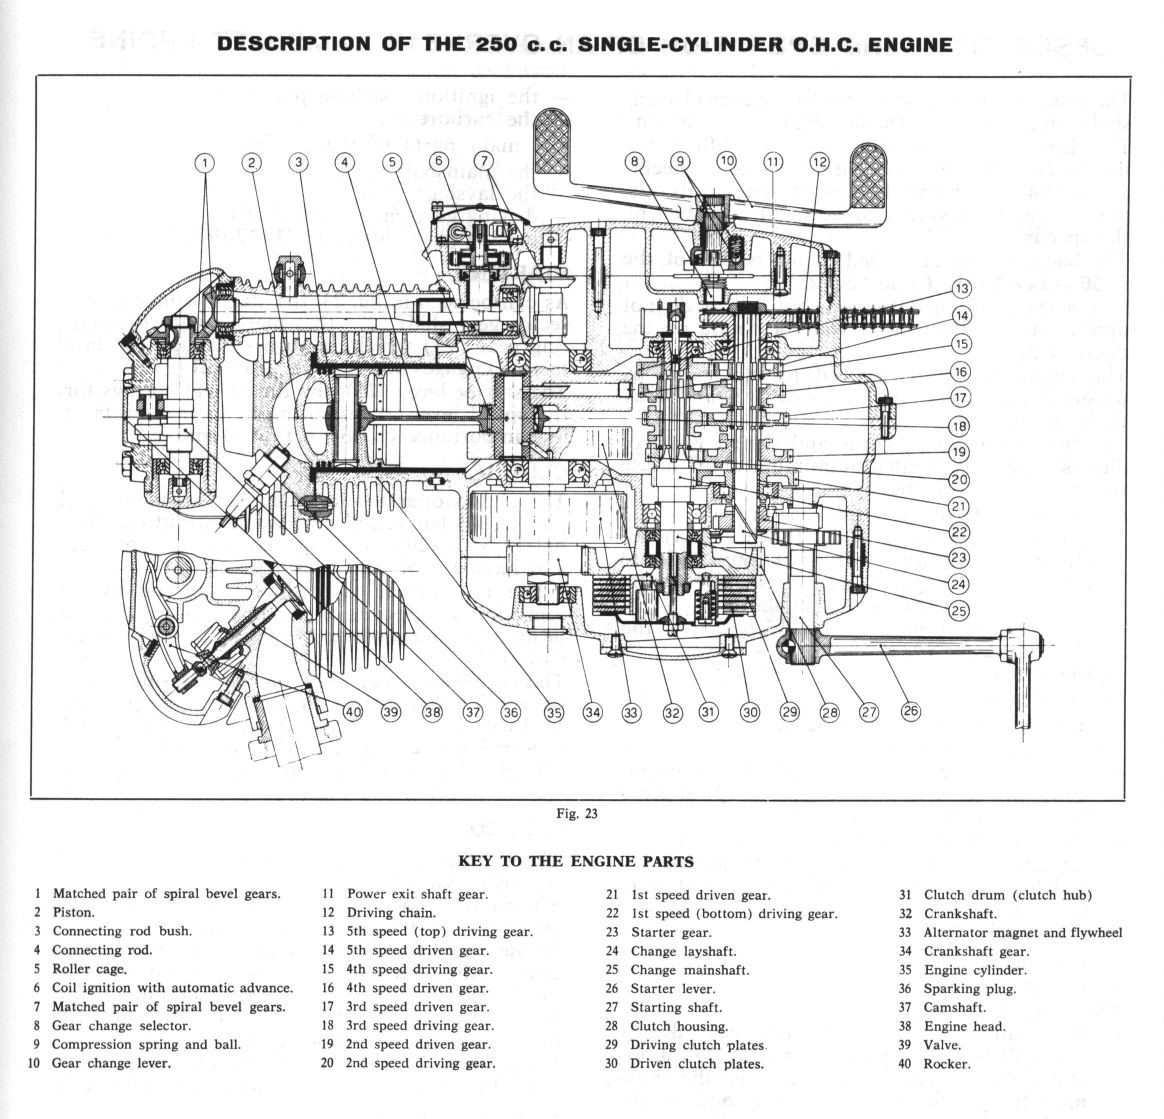 Ducati single engine cross section exploded view